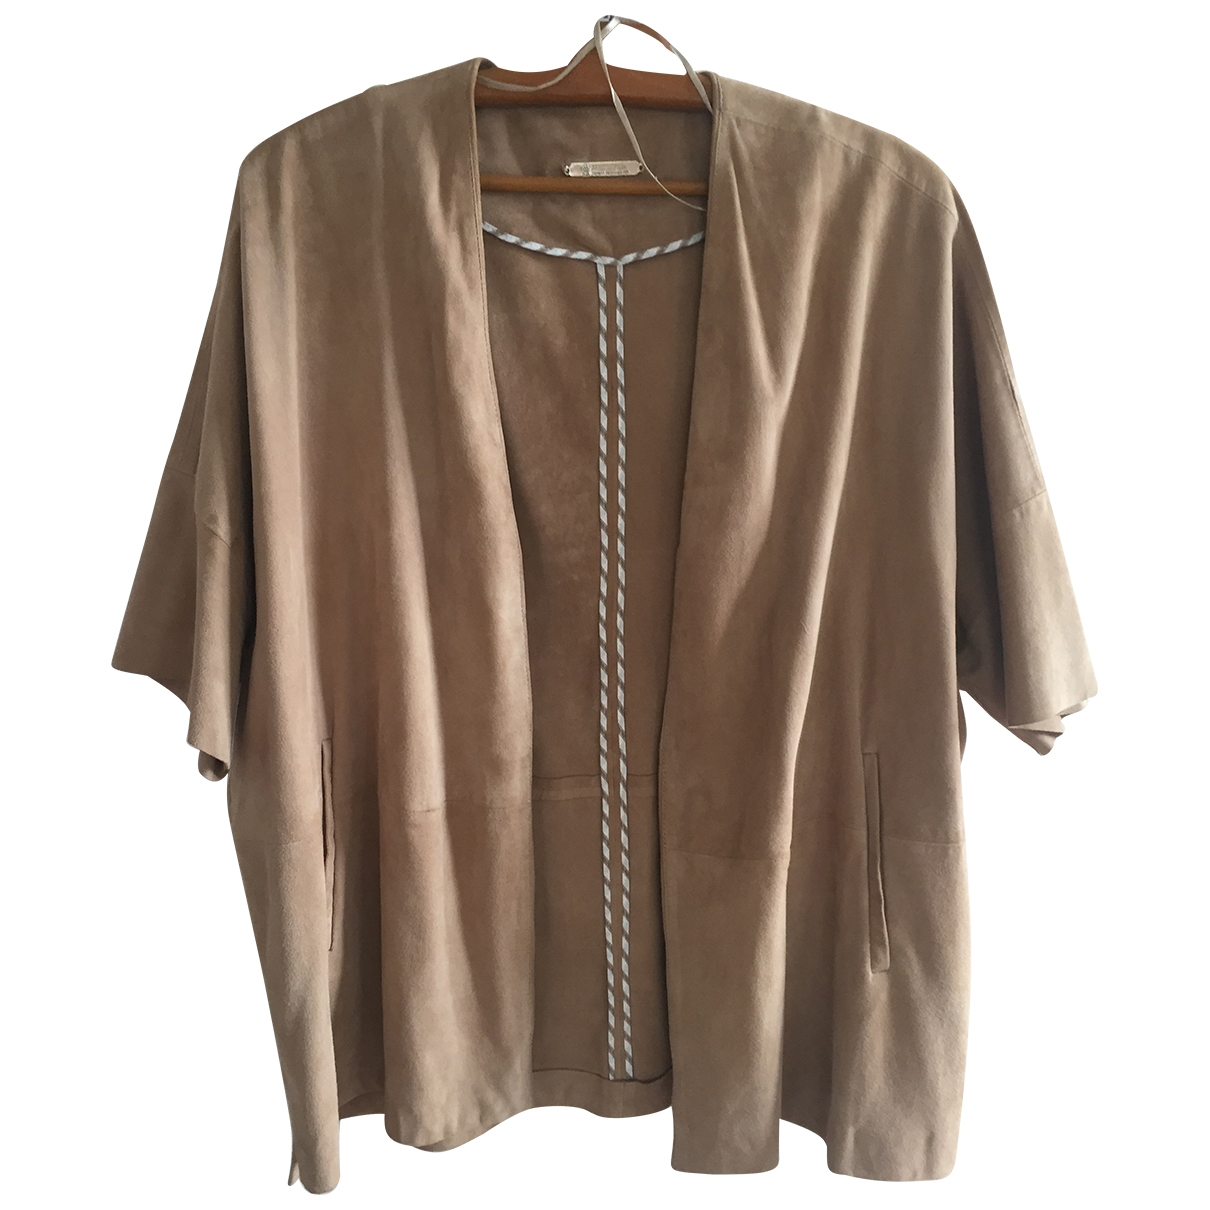 Massimo Dutti \N Camel Suede jacket for Women S International